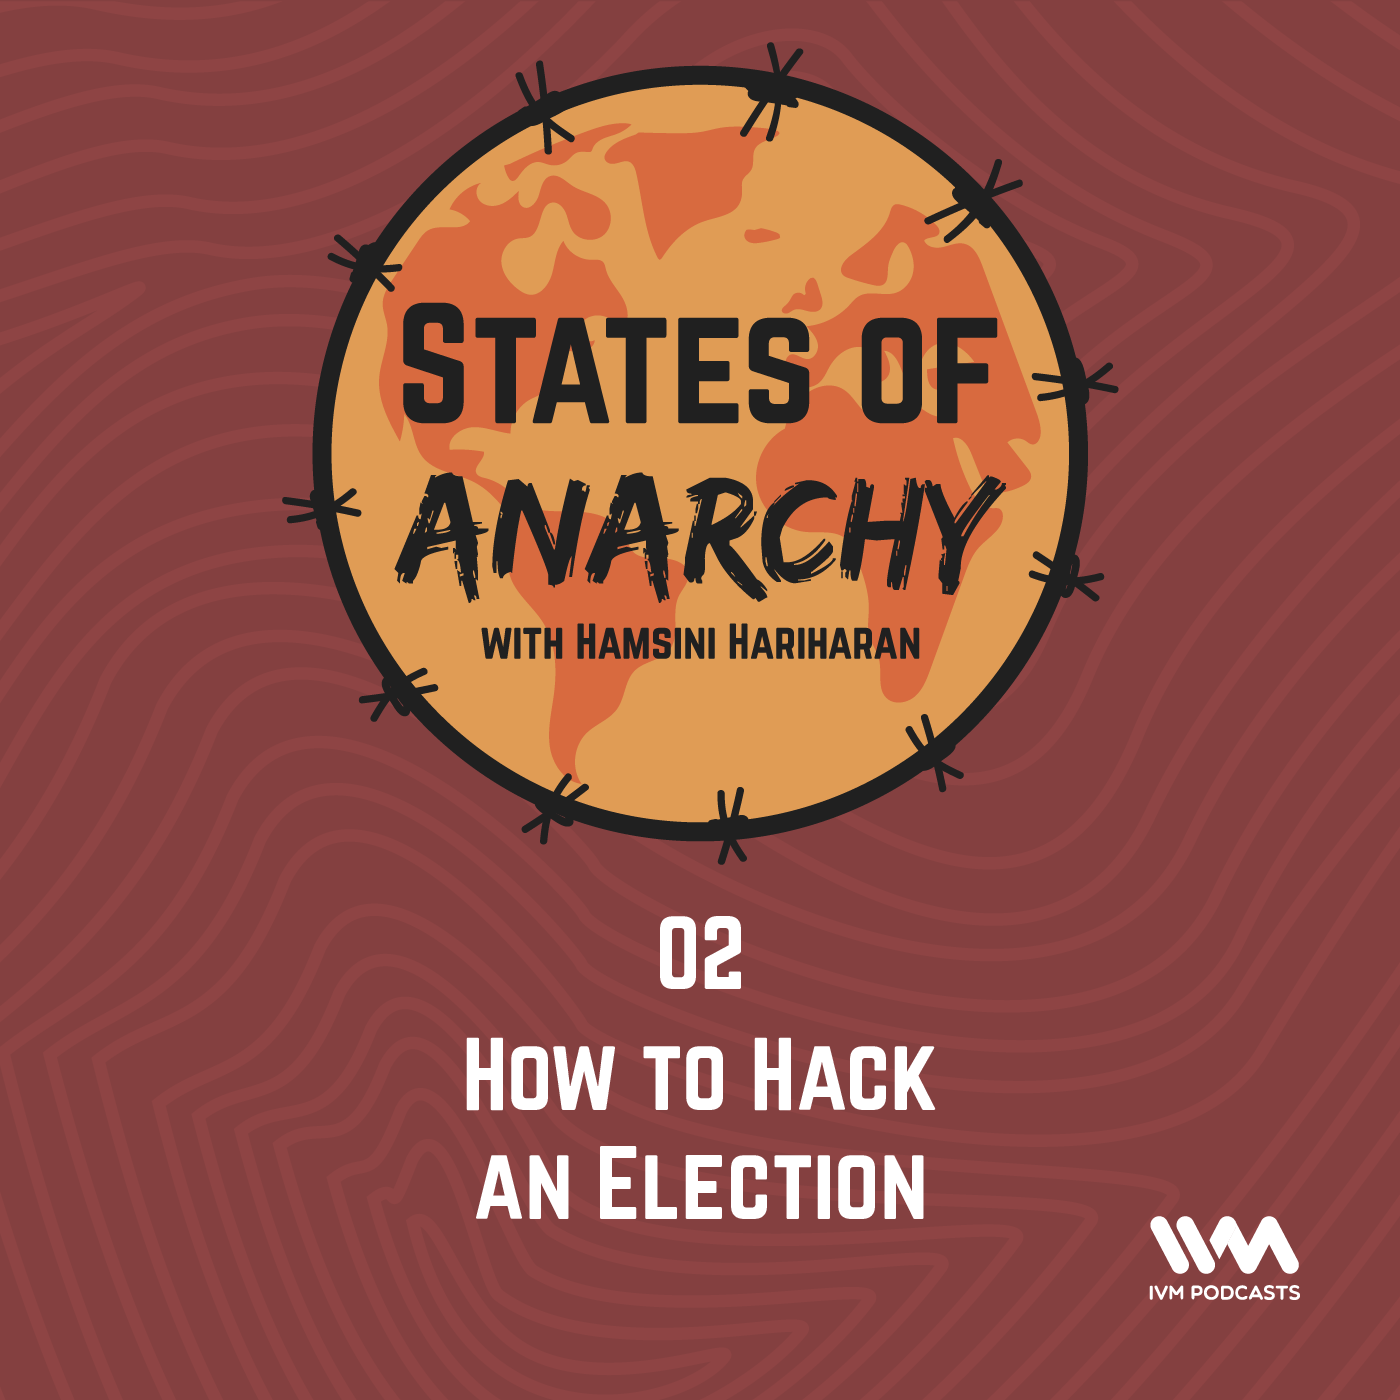 Ep. 02: How to Hack an Election